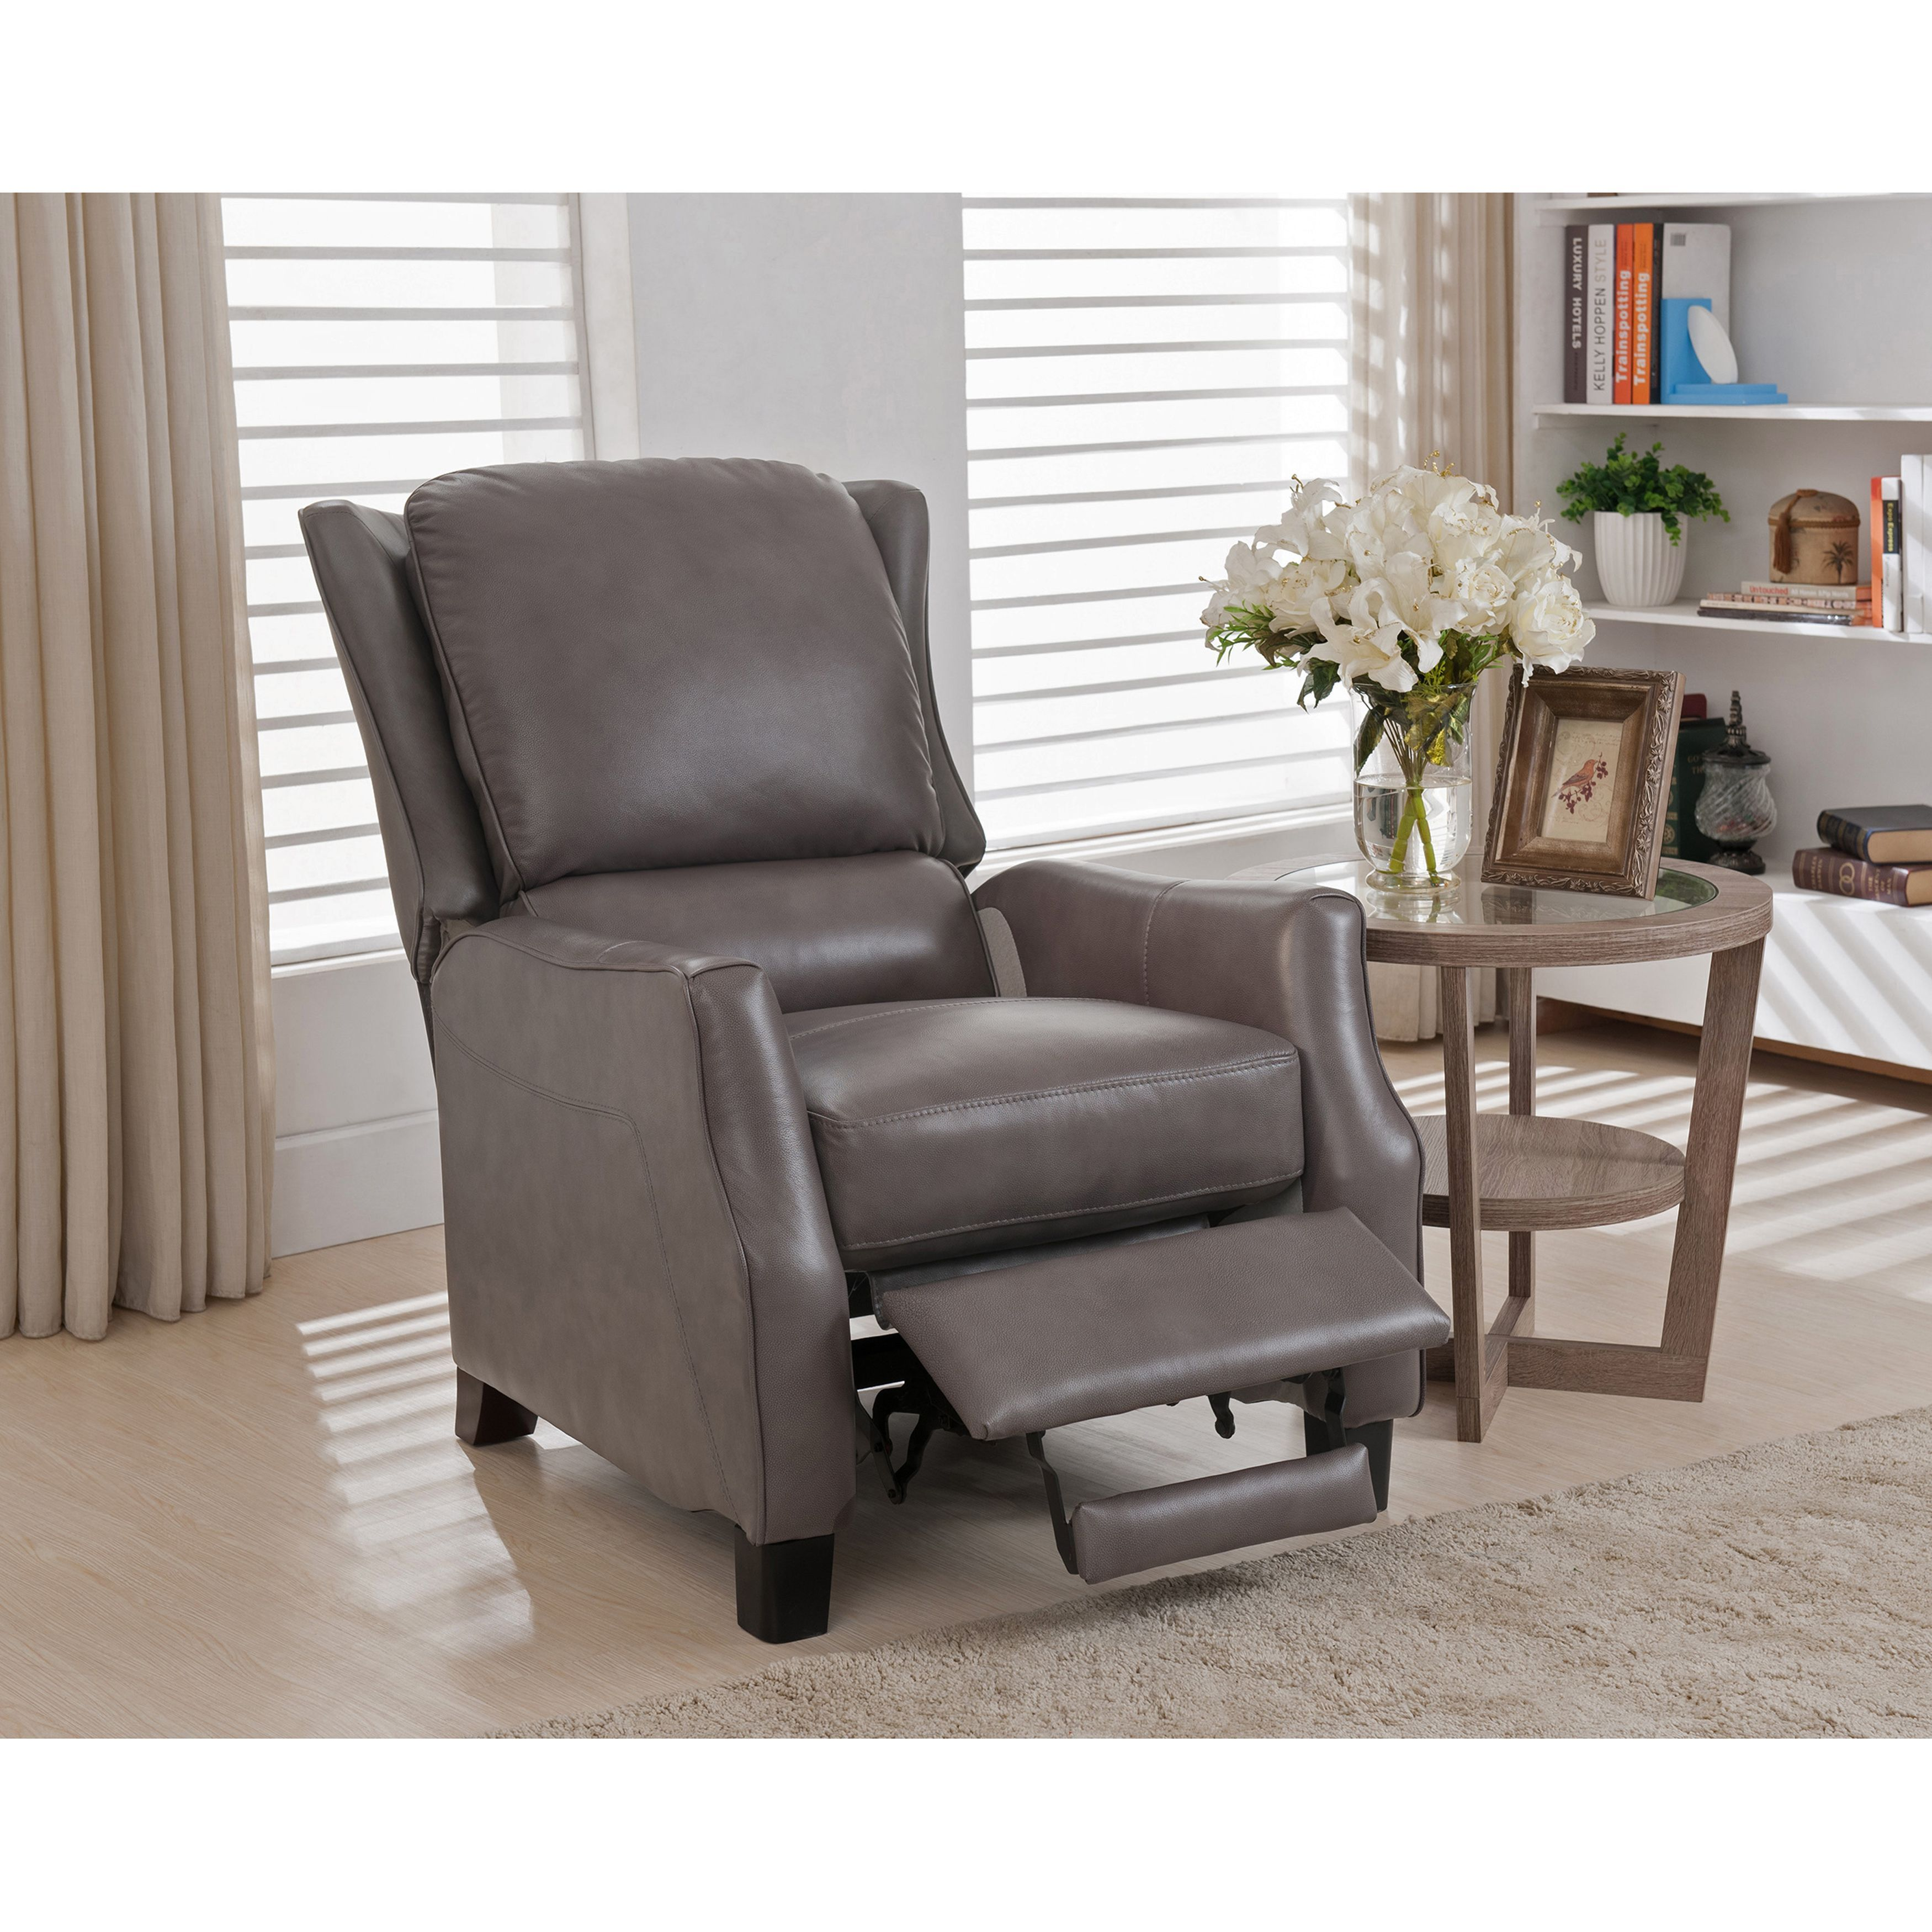 Explore Leather Recliner Chair Recliner Chairs and more!  sc 1 st  Pinterest & Relax in comfort and style with this ultra-premium leather ... islam-shia.org